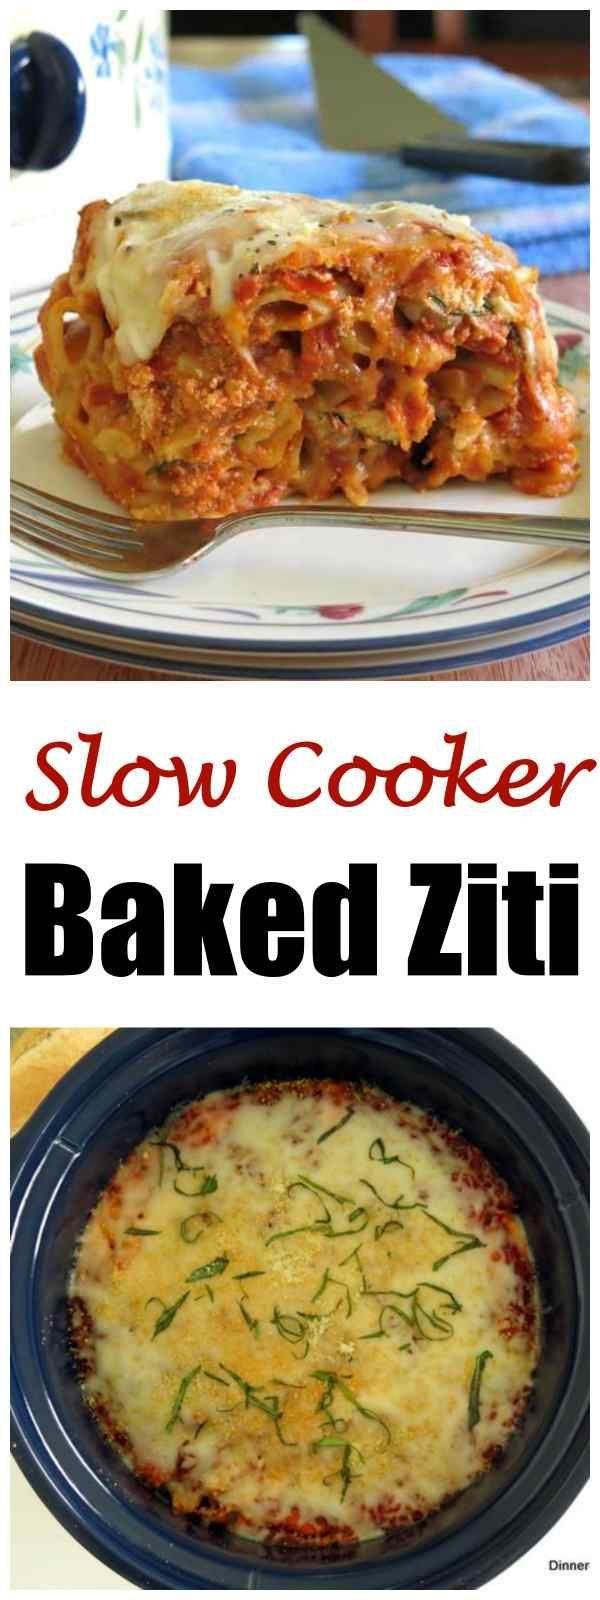 Slow Cooker Baked Ziti with Three Cheeses (but you can add meat and veggies.) You don't have to cook the noodles first in this easy recipe. We love it for entertaining or just enjoying a a comfort dish with the family. #slowcooker #bakedziti